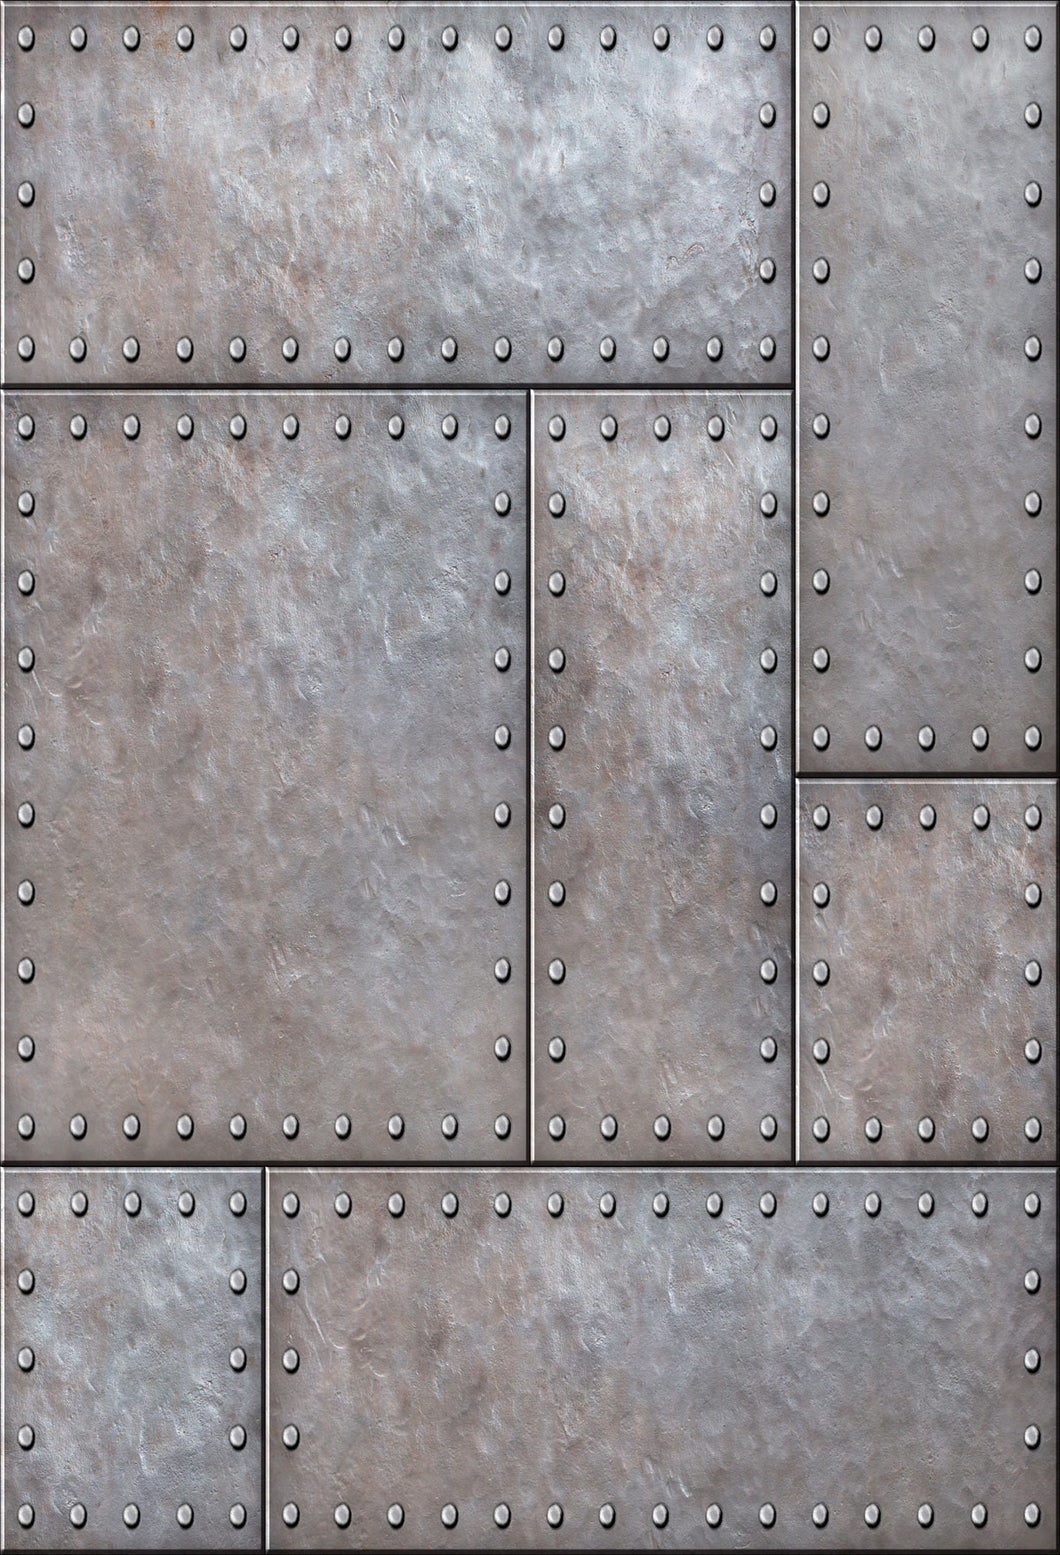 Kate Metal background with rivets Backdrop for Photography